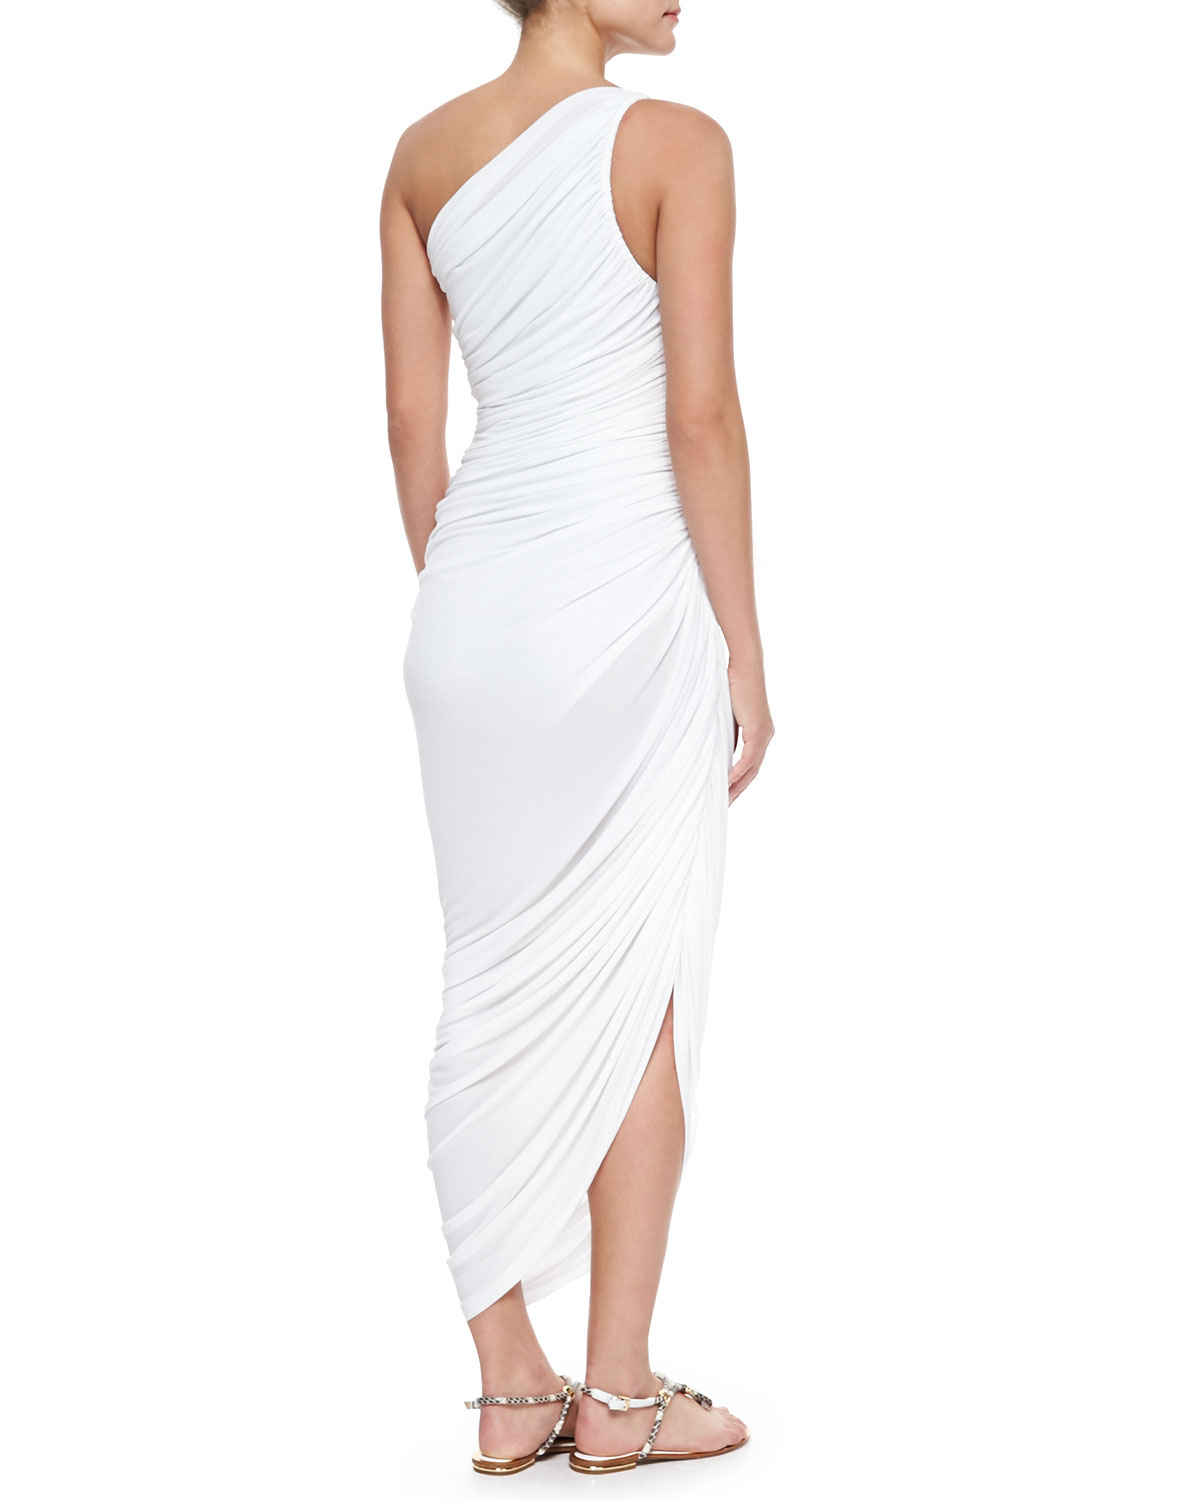 Diana one-shoulder jersey dress Norma Kamali WLsRqq